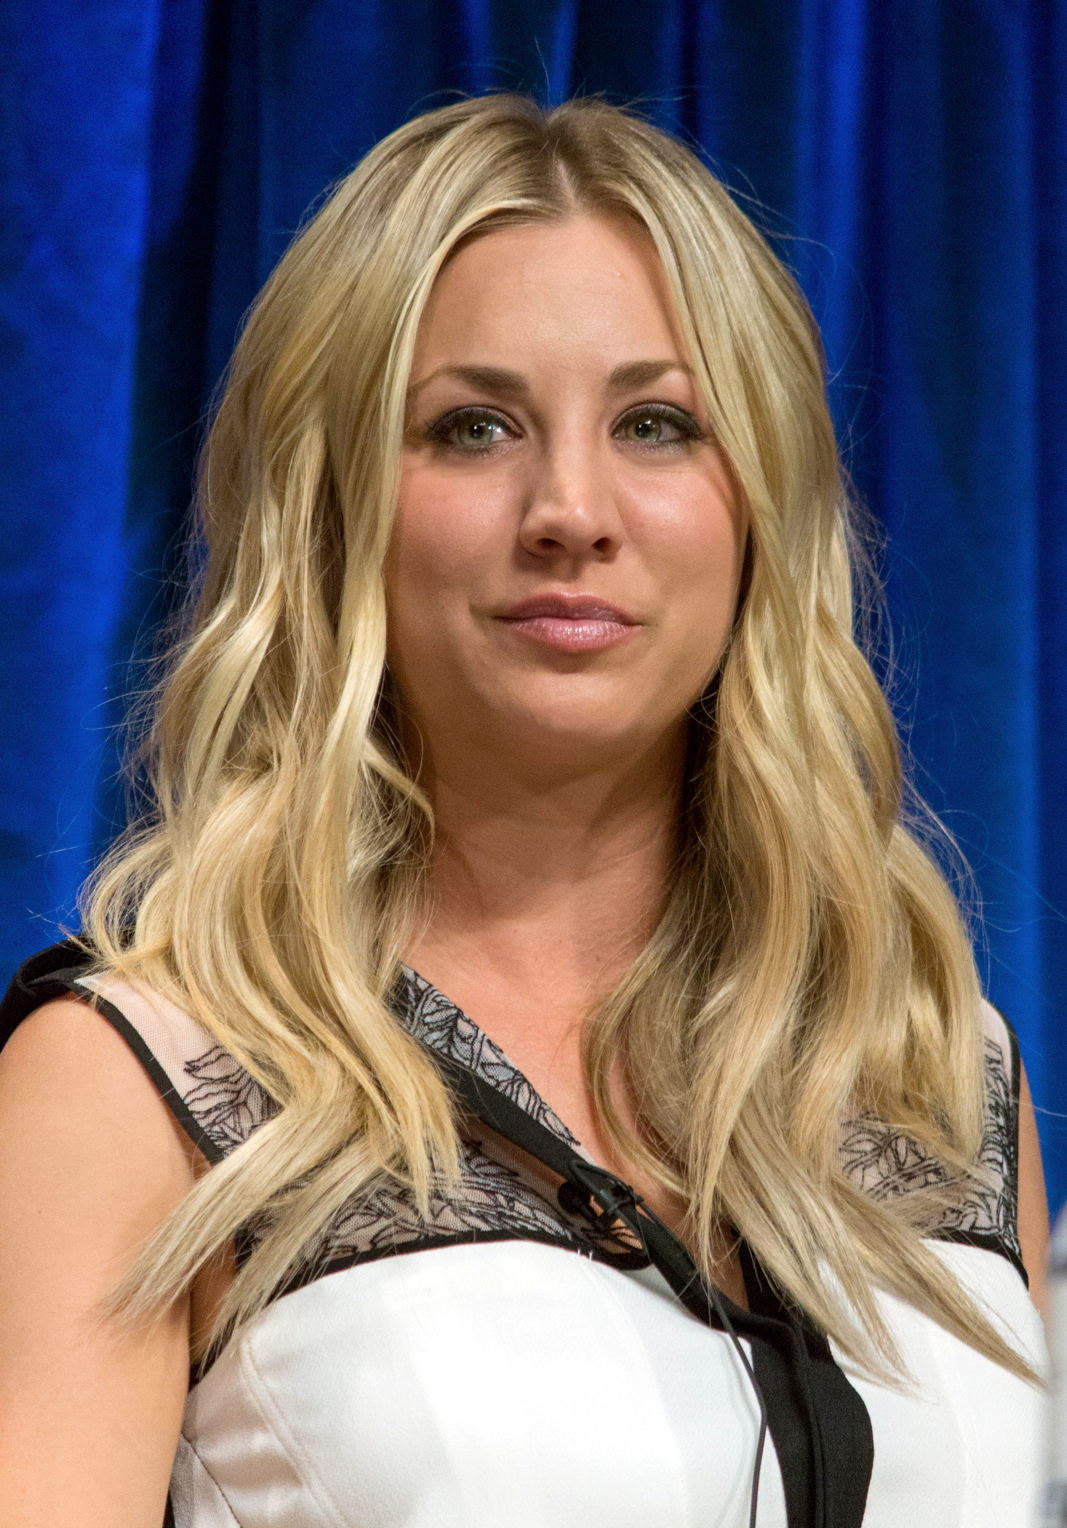 Kaley Cuoco - Wikipedia